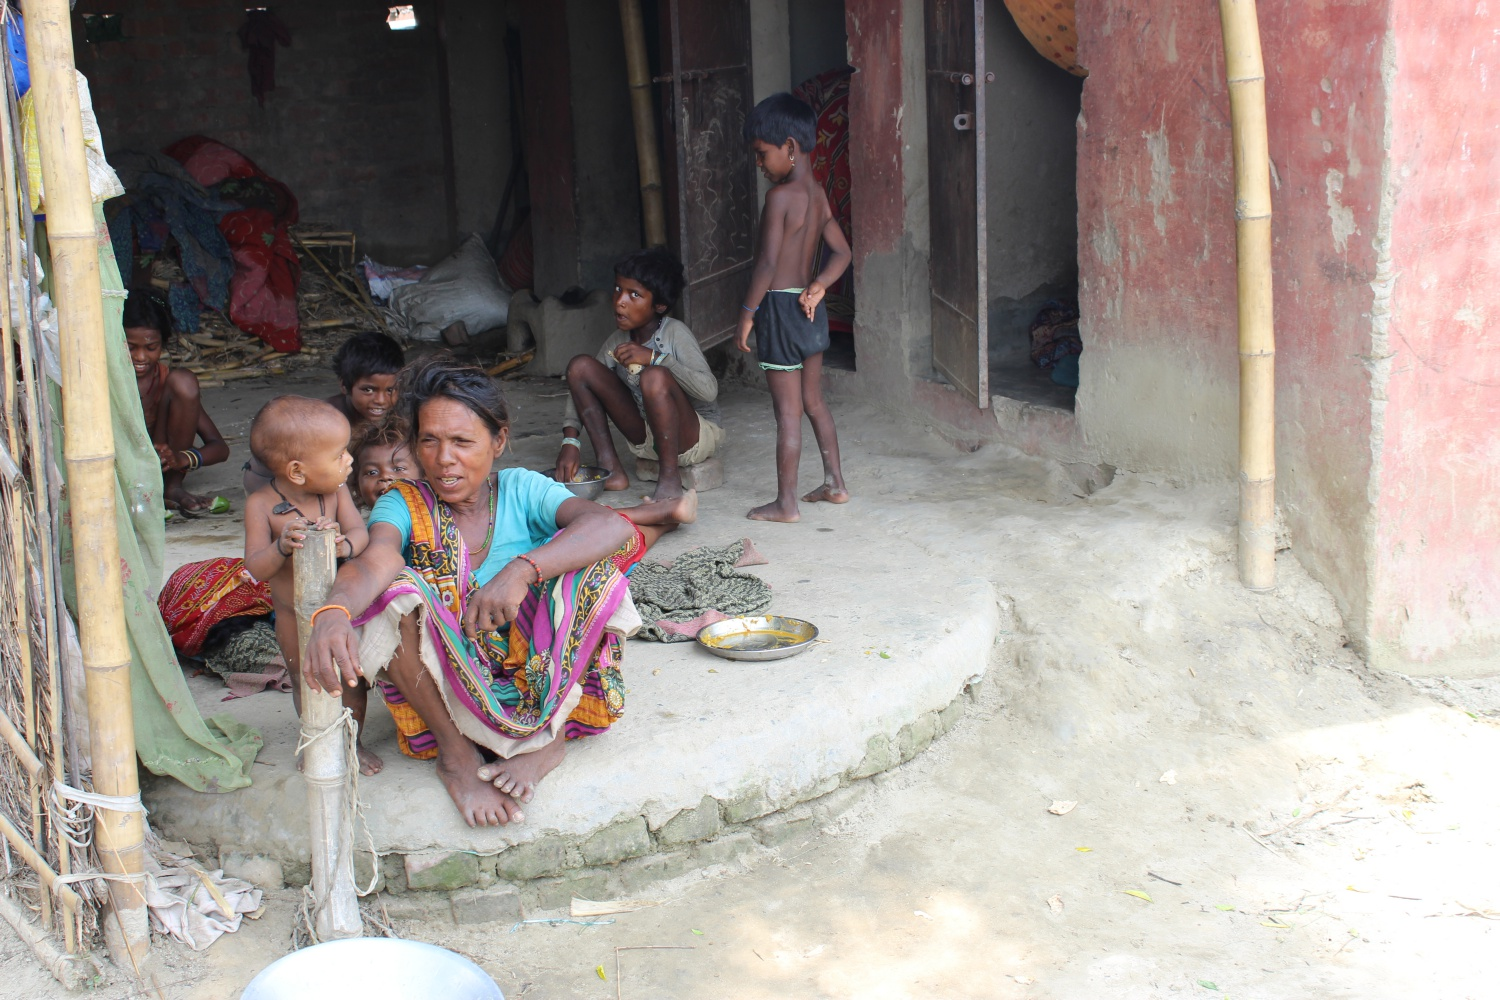 """""""Since we have a big family we don't have enough rooms to accommodate all. We are poor people. We don't have money to build new house. People in nearby village laughs at us. They tease us by saying 'dekho dekho ye log to souchale main rahete he (Look these people live in a toilet)"""". Geeta Devi along with her daughter-in-laws and two son lives in Ganeshthan village of Madhepura district."""